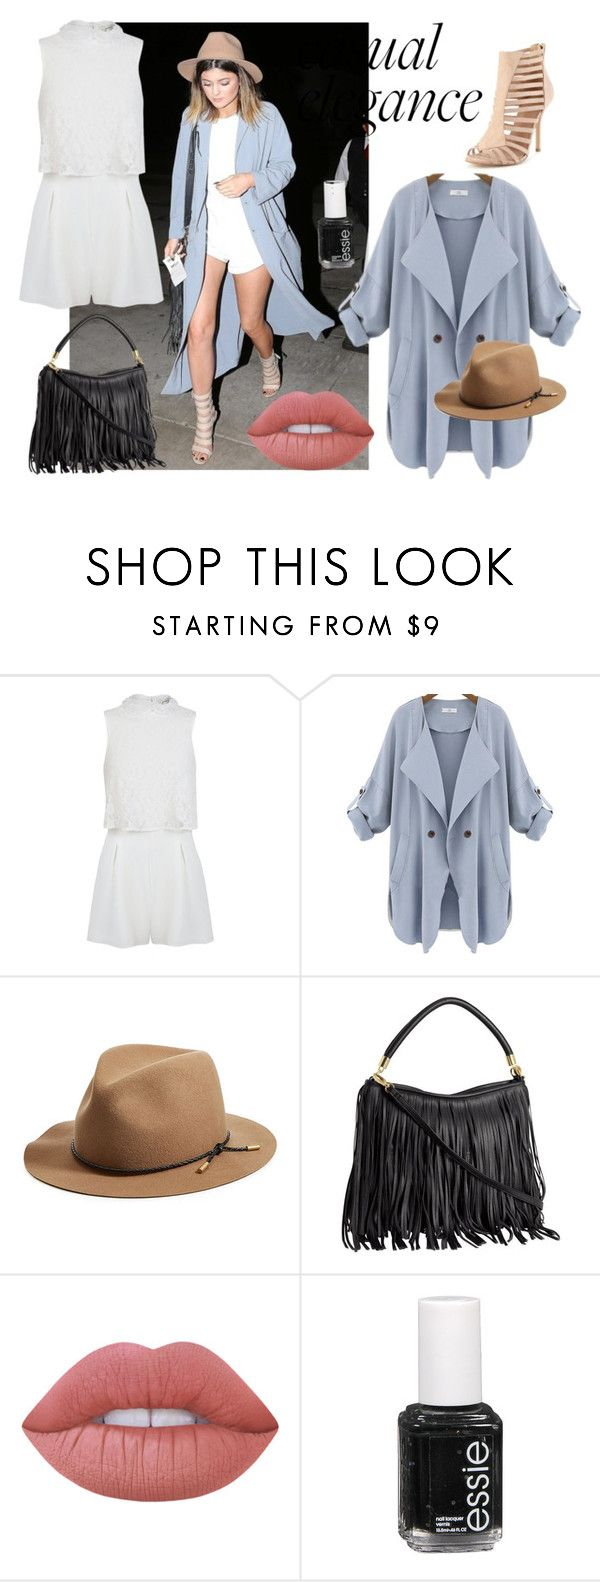 """Shop the look - kylie jenner"" by shop-styleloft on Polyvore featuring Miss Selfridge, rag & bone, Lime Crime and Essie"